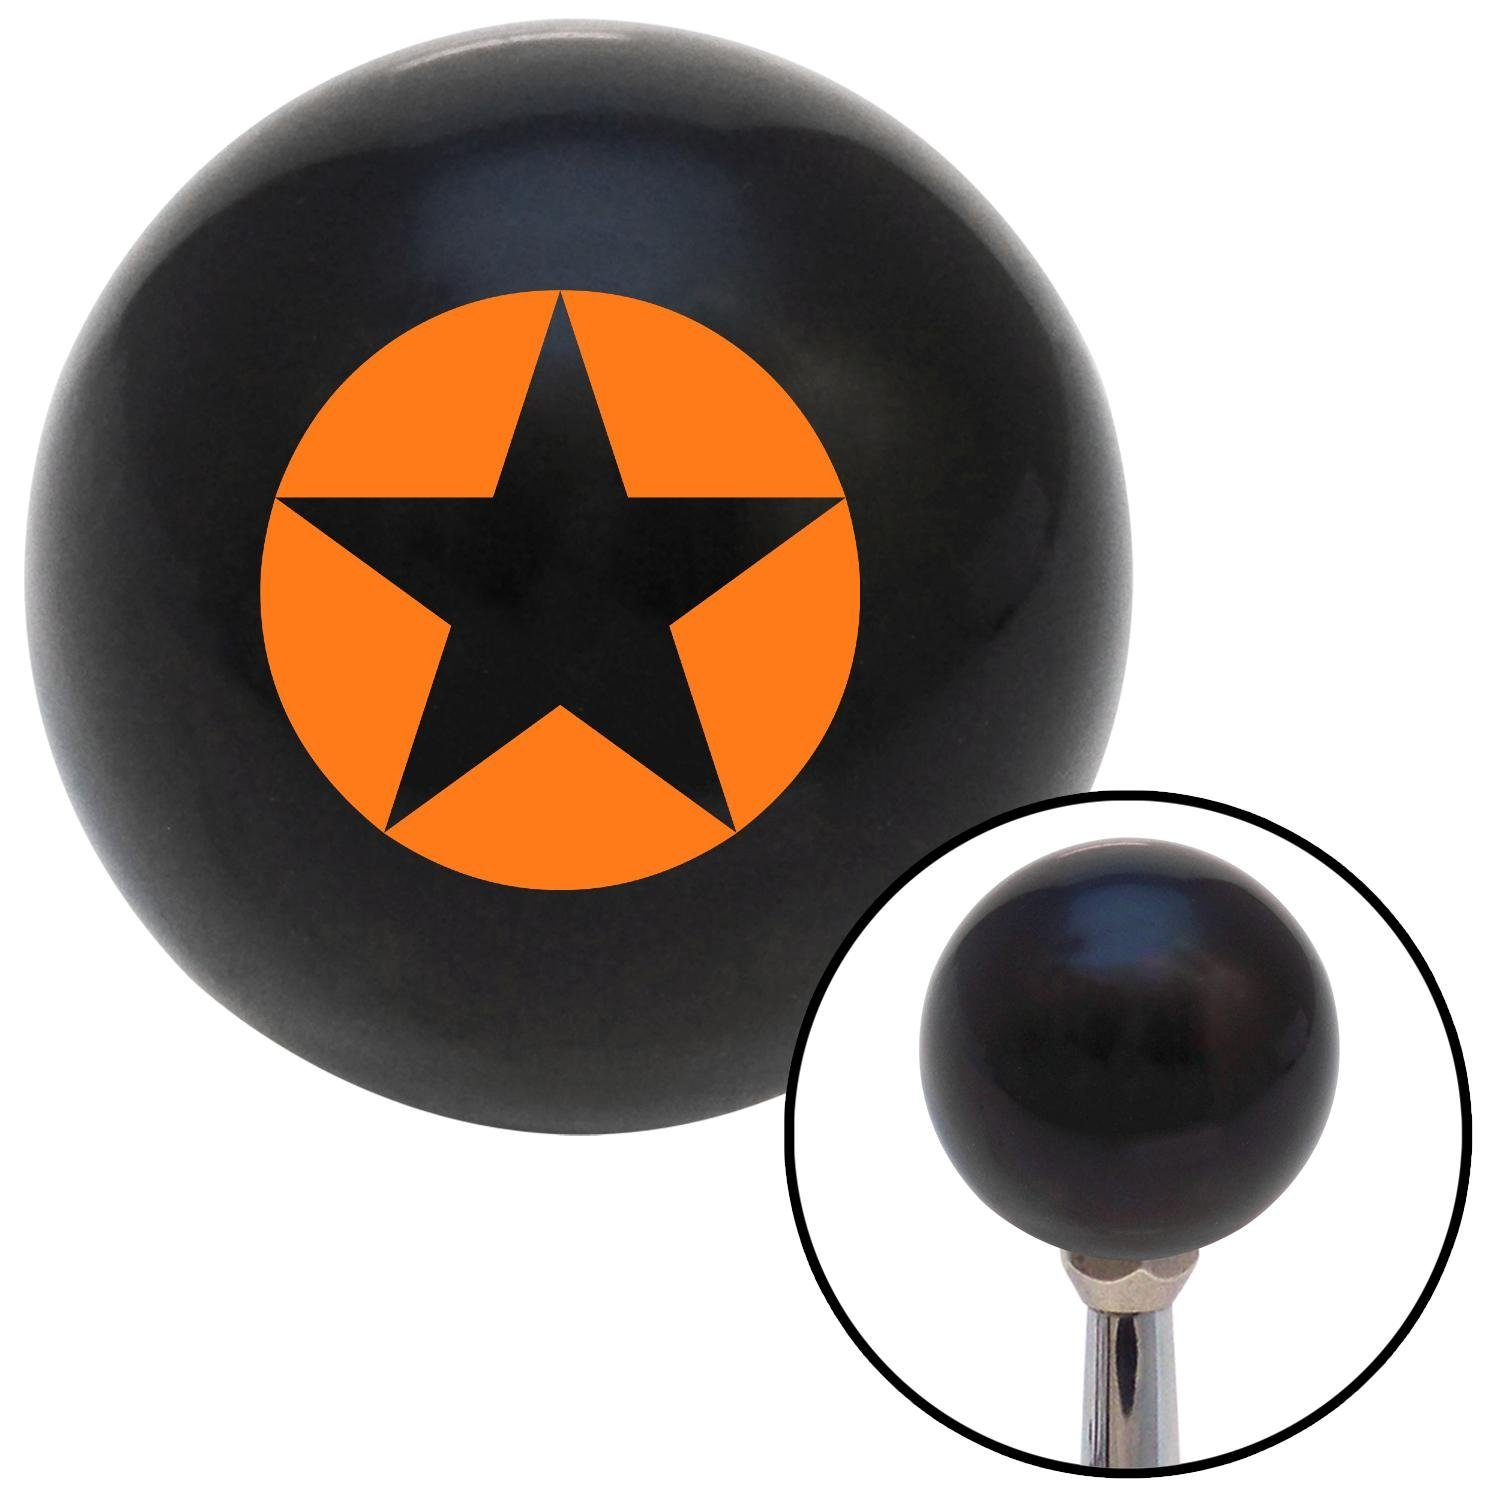 Orange Star in Circle American Shifter 106955 Black Shift Knob with M16 x 1.5 Insert